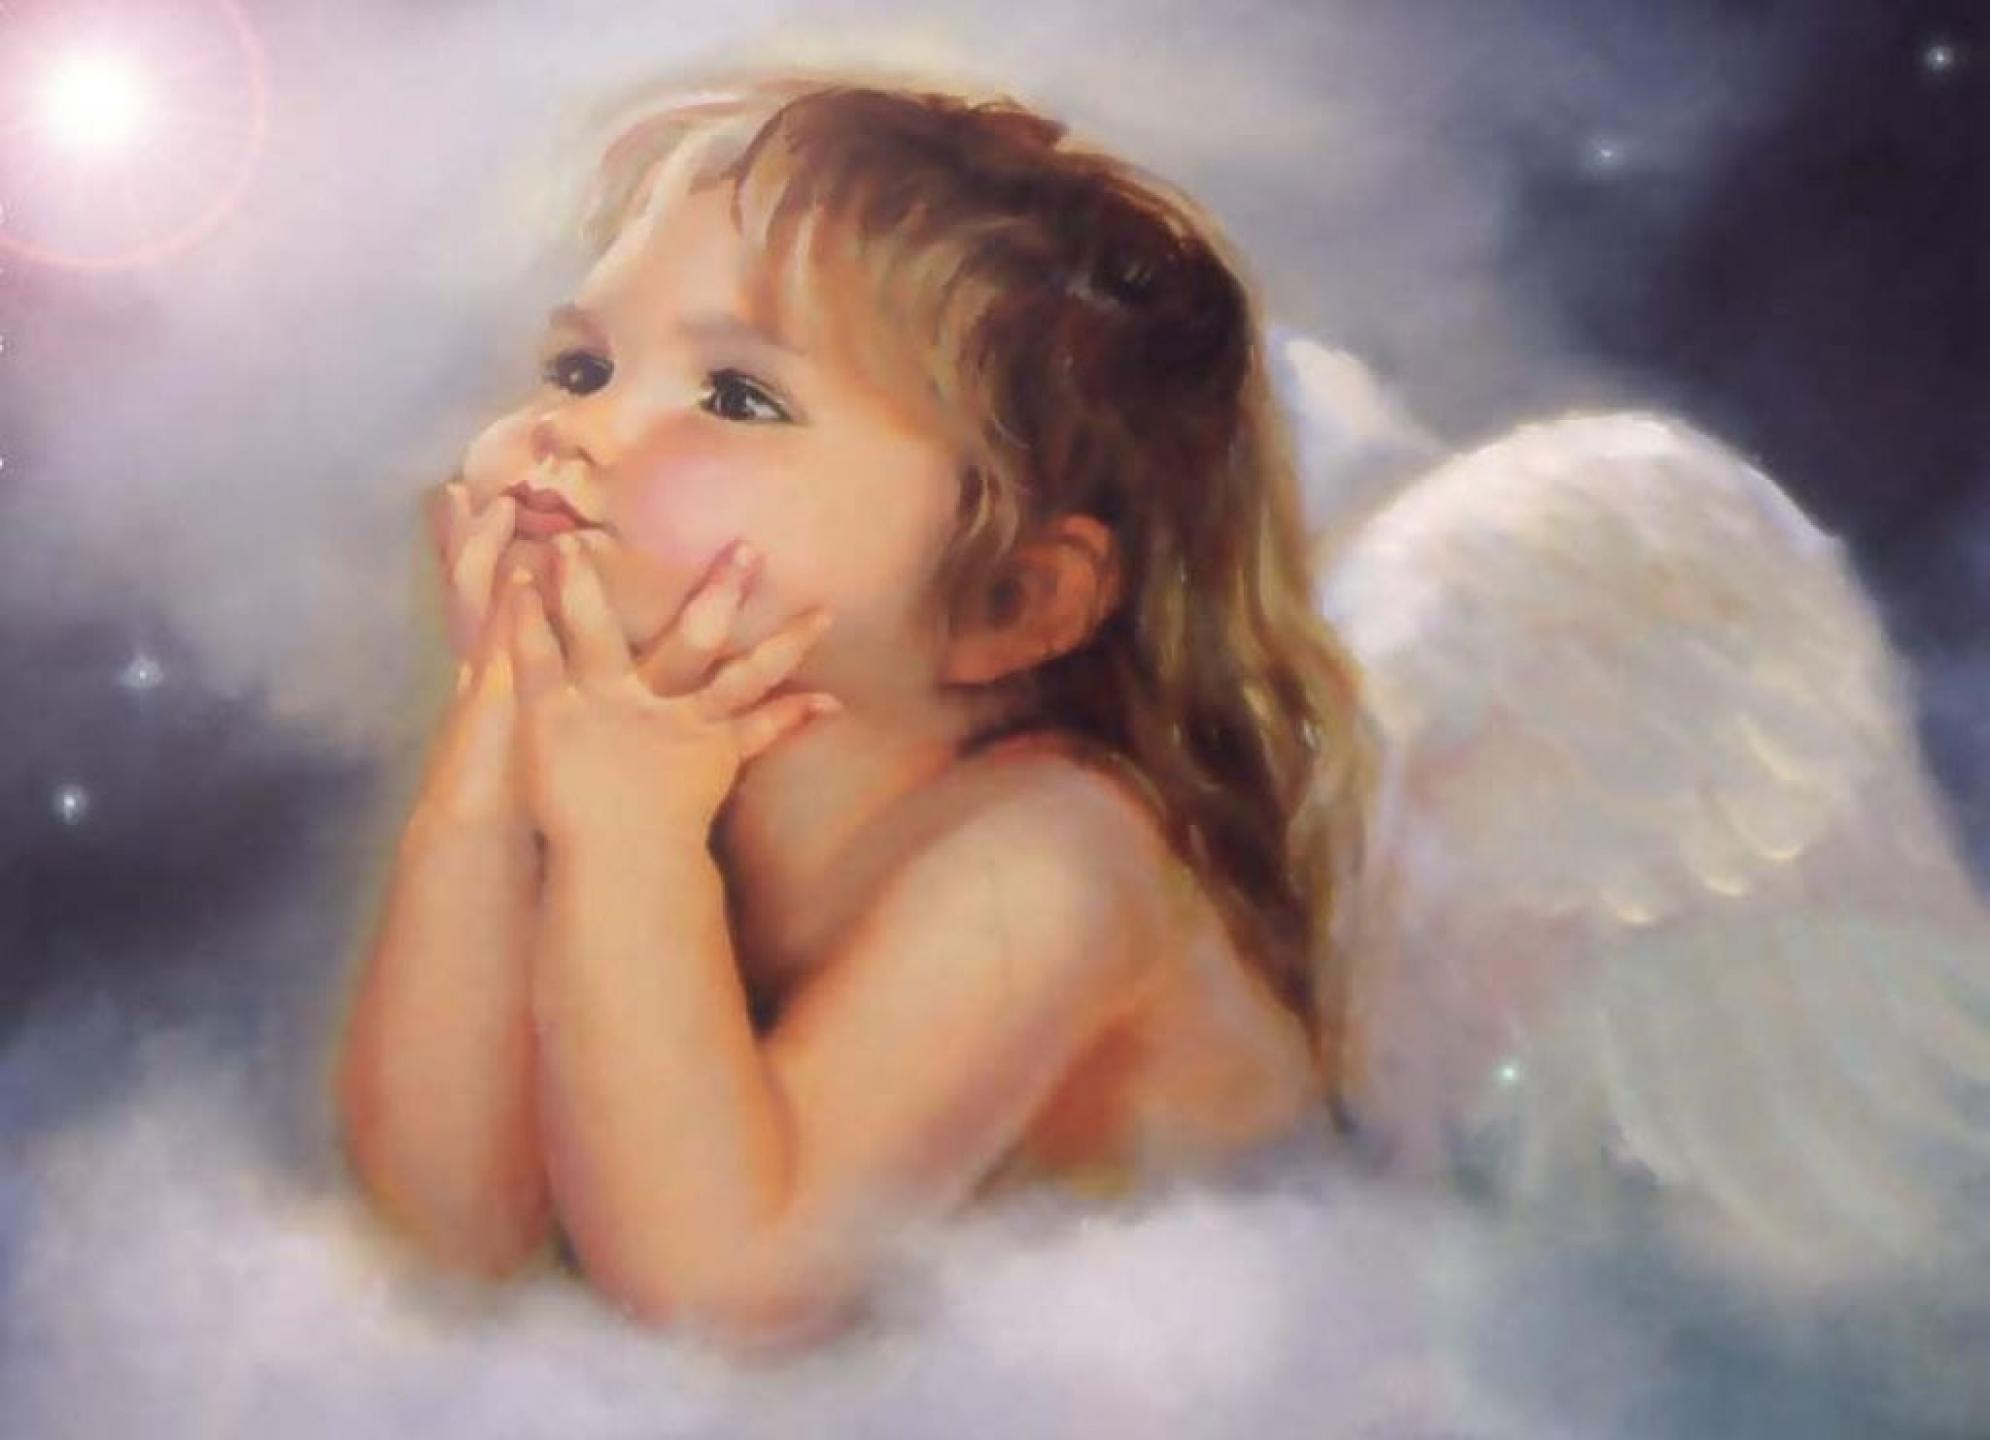 Little Angel Girl 1024x768 - Download FREE Widescreen HD Little Angel